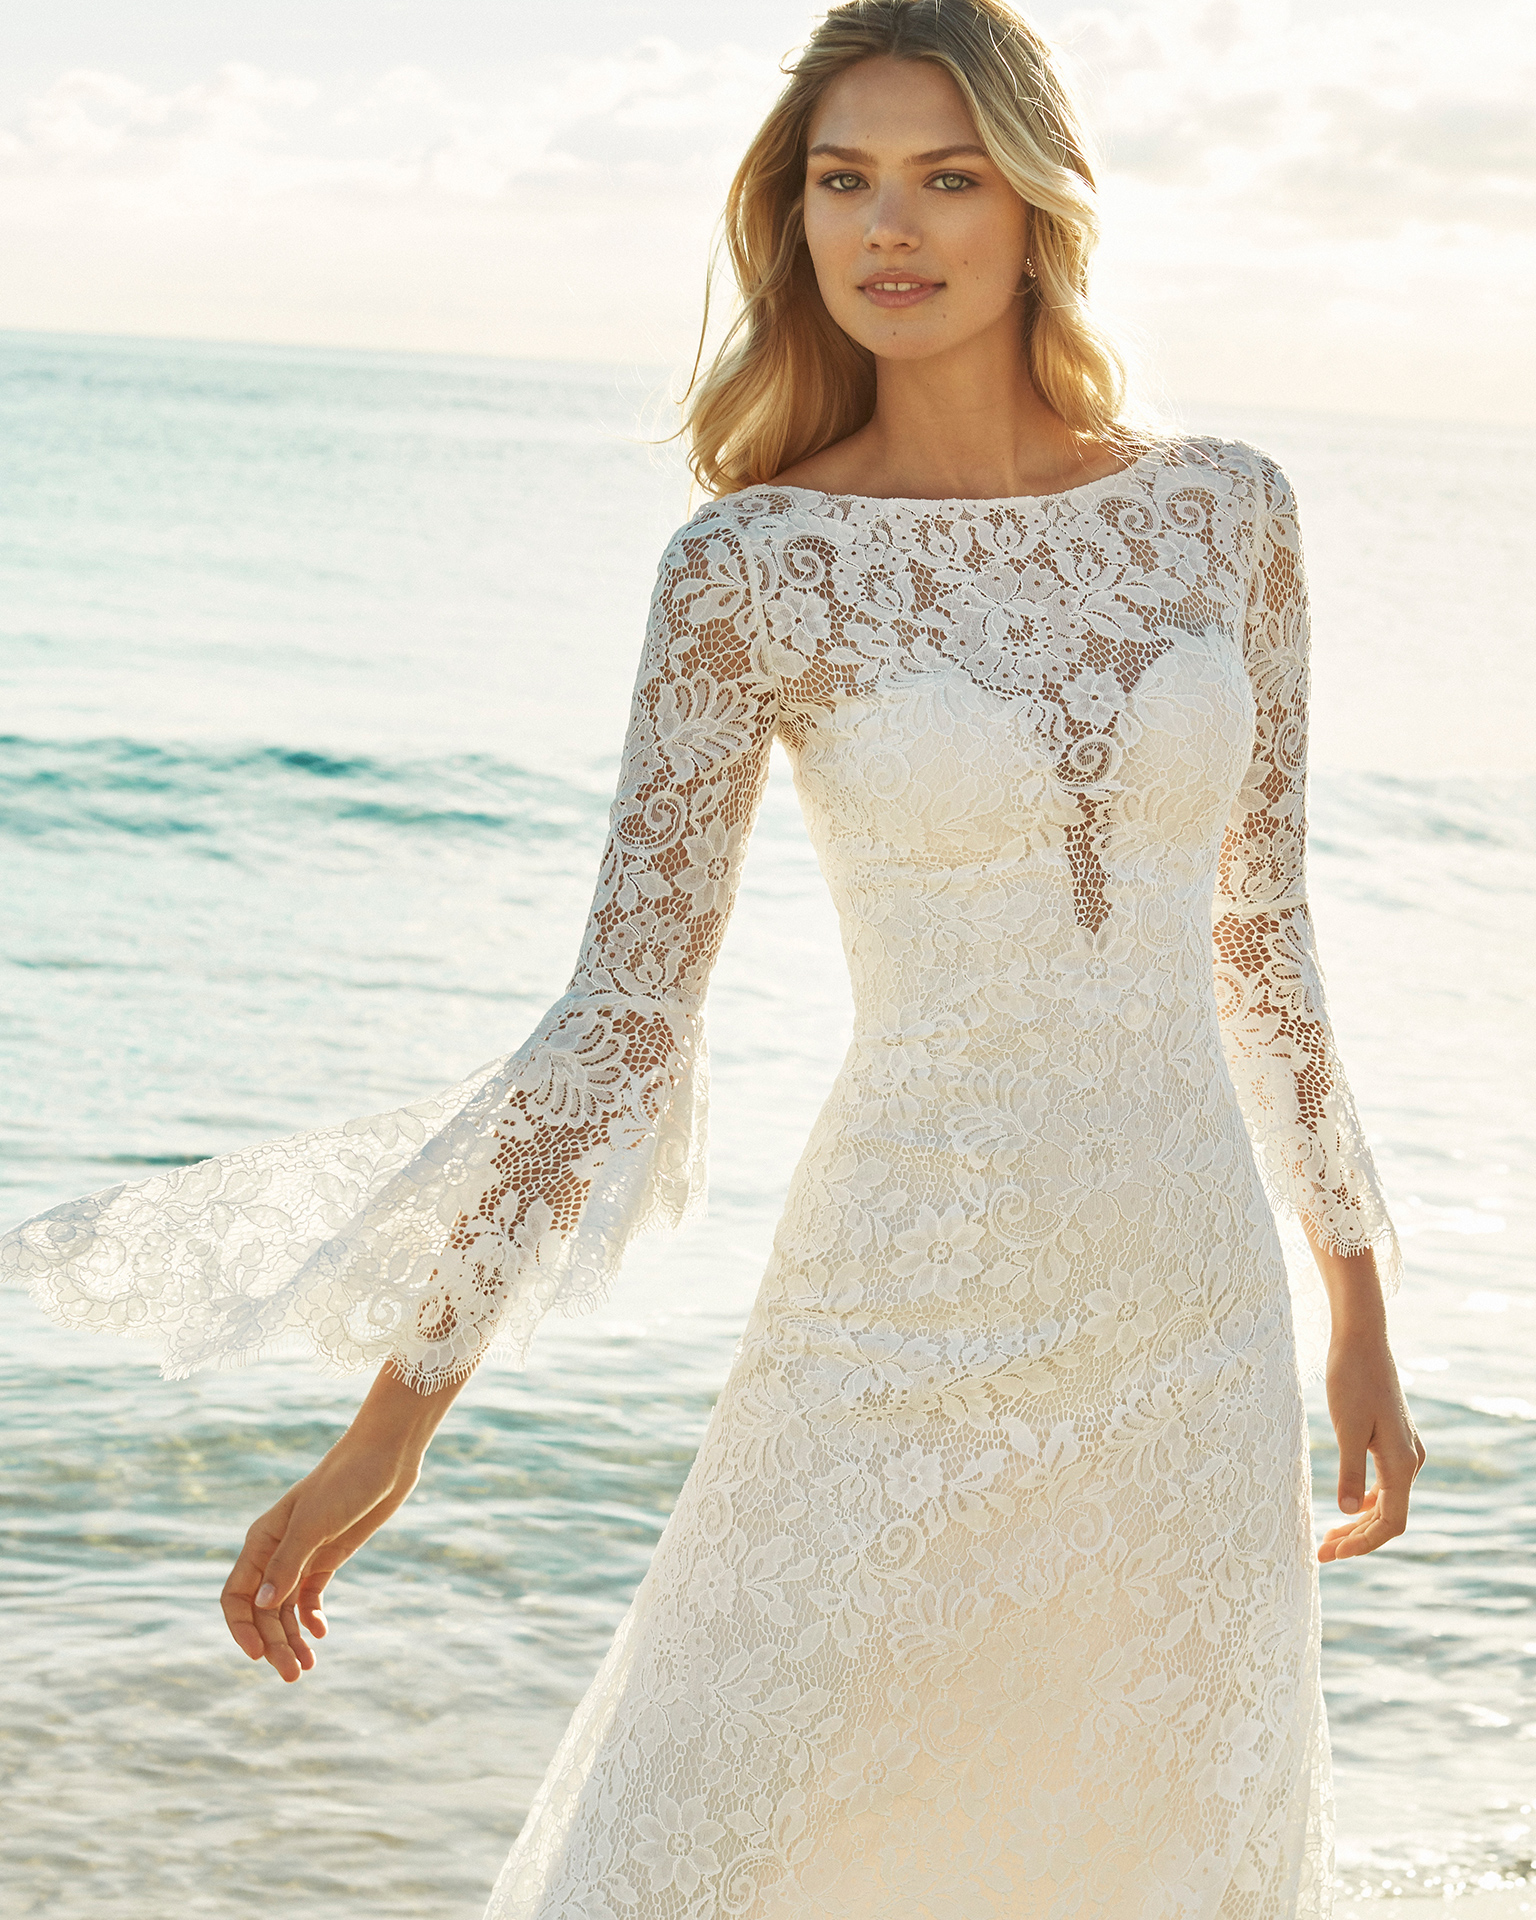 Robe de mariée coupe droite en dentelle.  Col bateau avec manches longues évasées et décolleté dans le dos. Disponible en couleur naturelle. Collection AIRE BEACH WEDDING 2019.